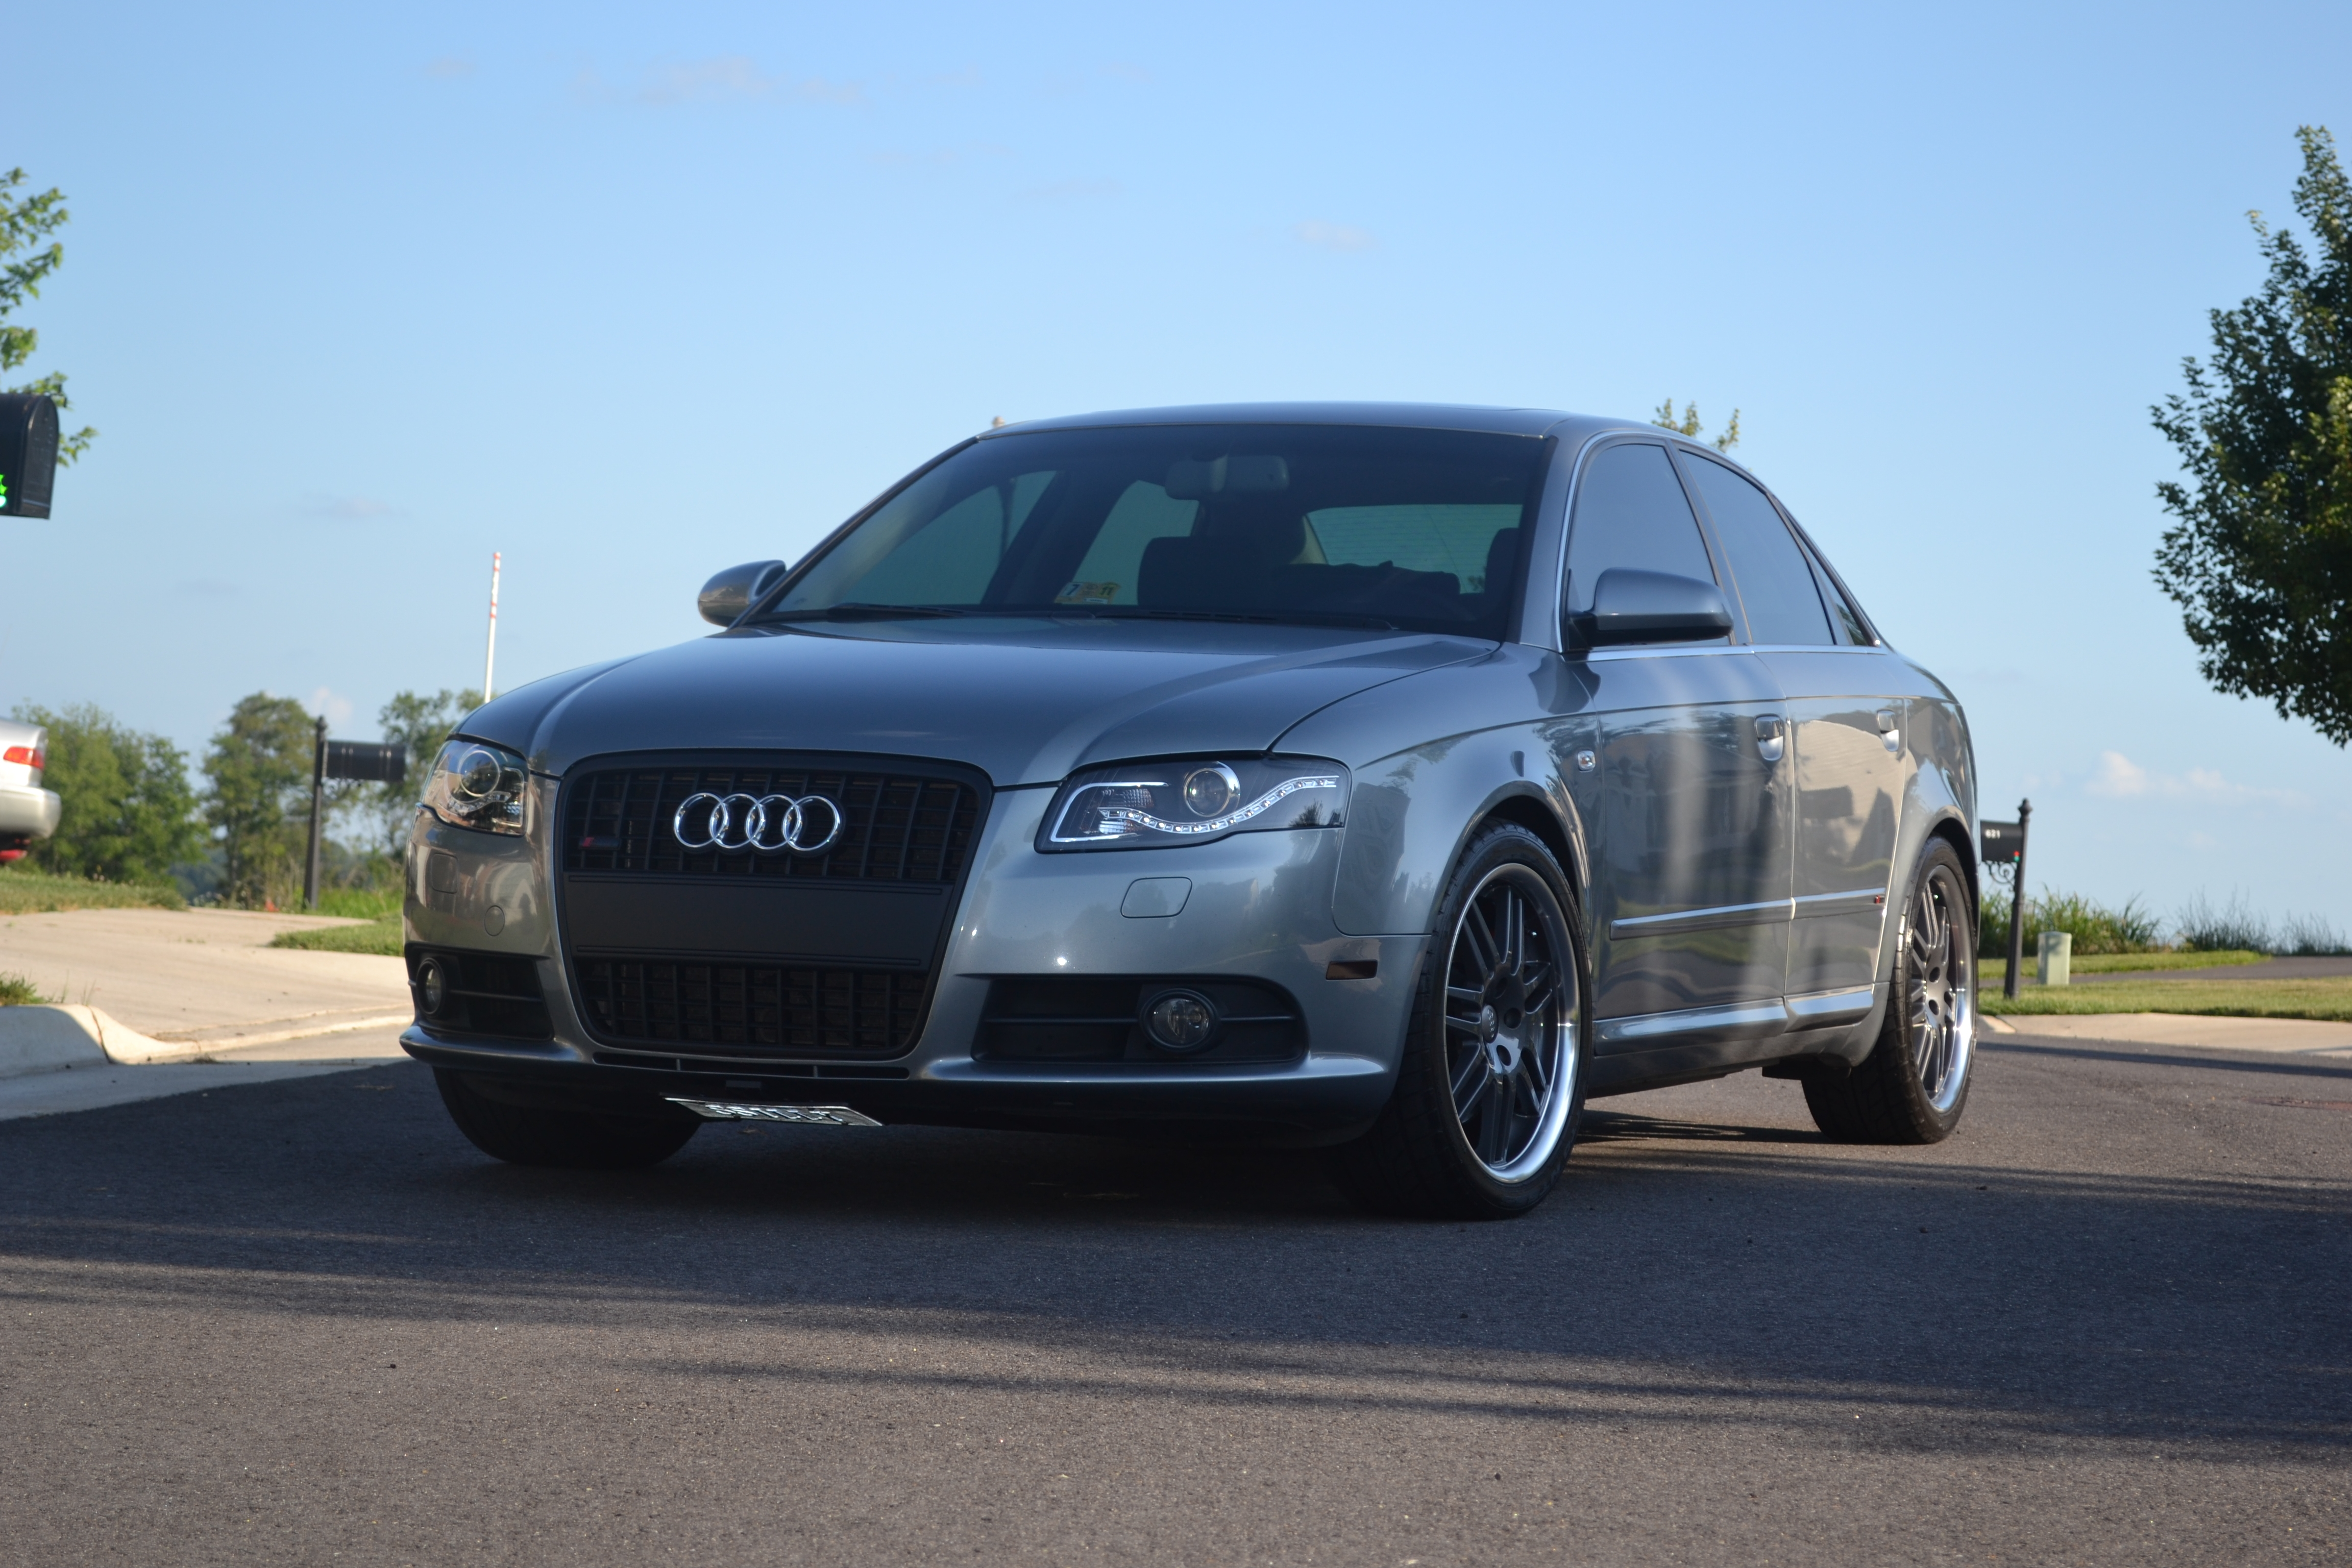 Amazing 2007 Audi A4 Headlights – Aratorn Sport Cars